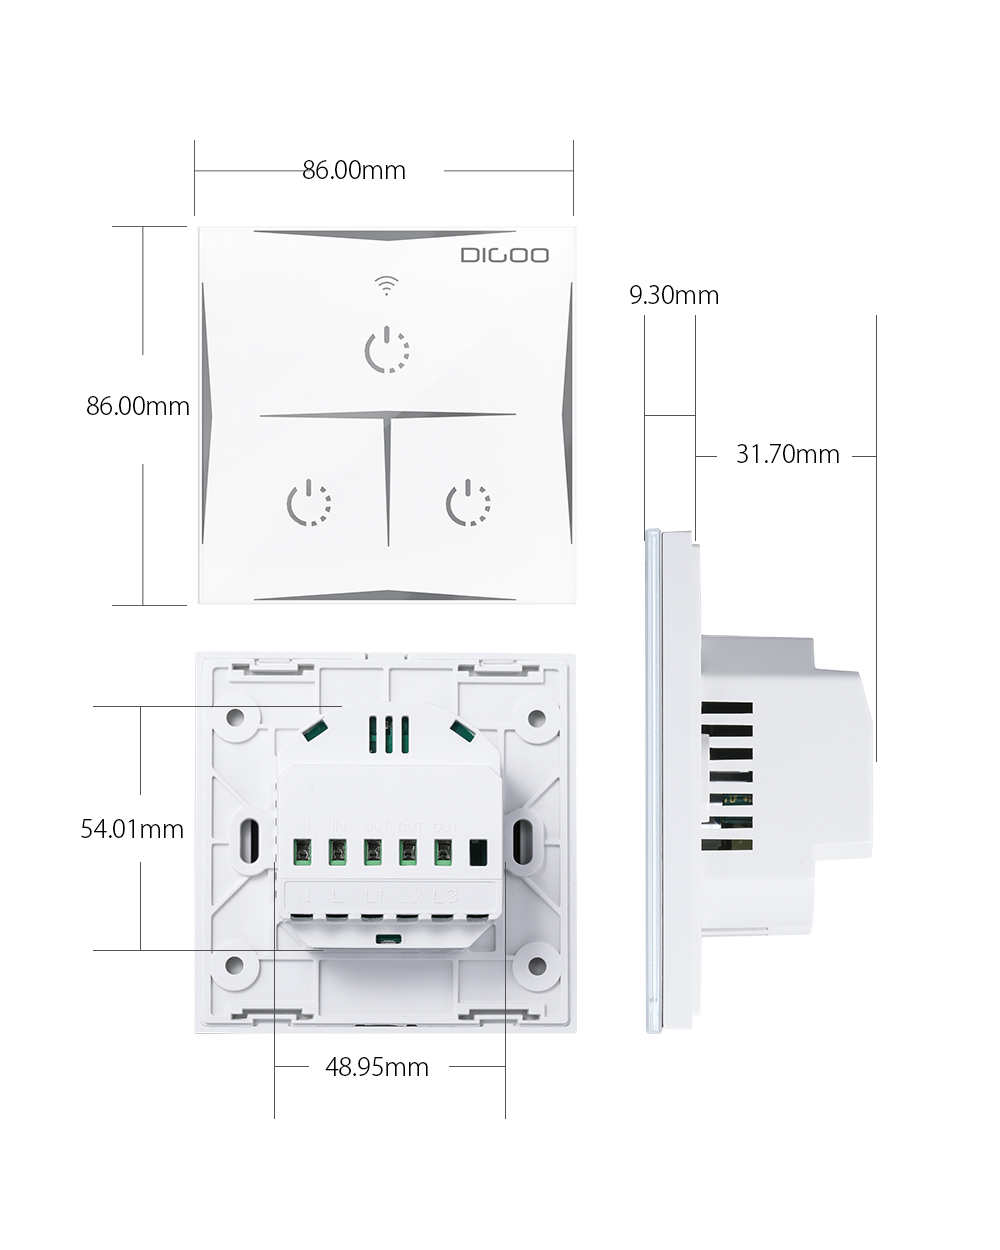 DIGOO DG-S601 EU AC 100V-240V 3 Gang Smart WIFI Wall Touch Light Switch Glass Panel Remote Controller Work with Amazon Alexa Google Assistant